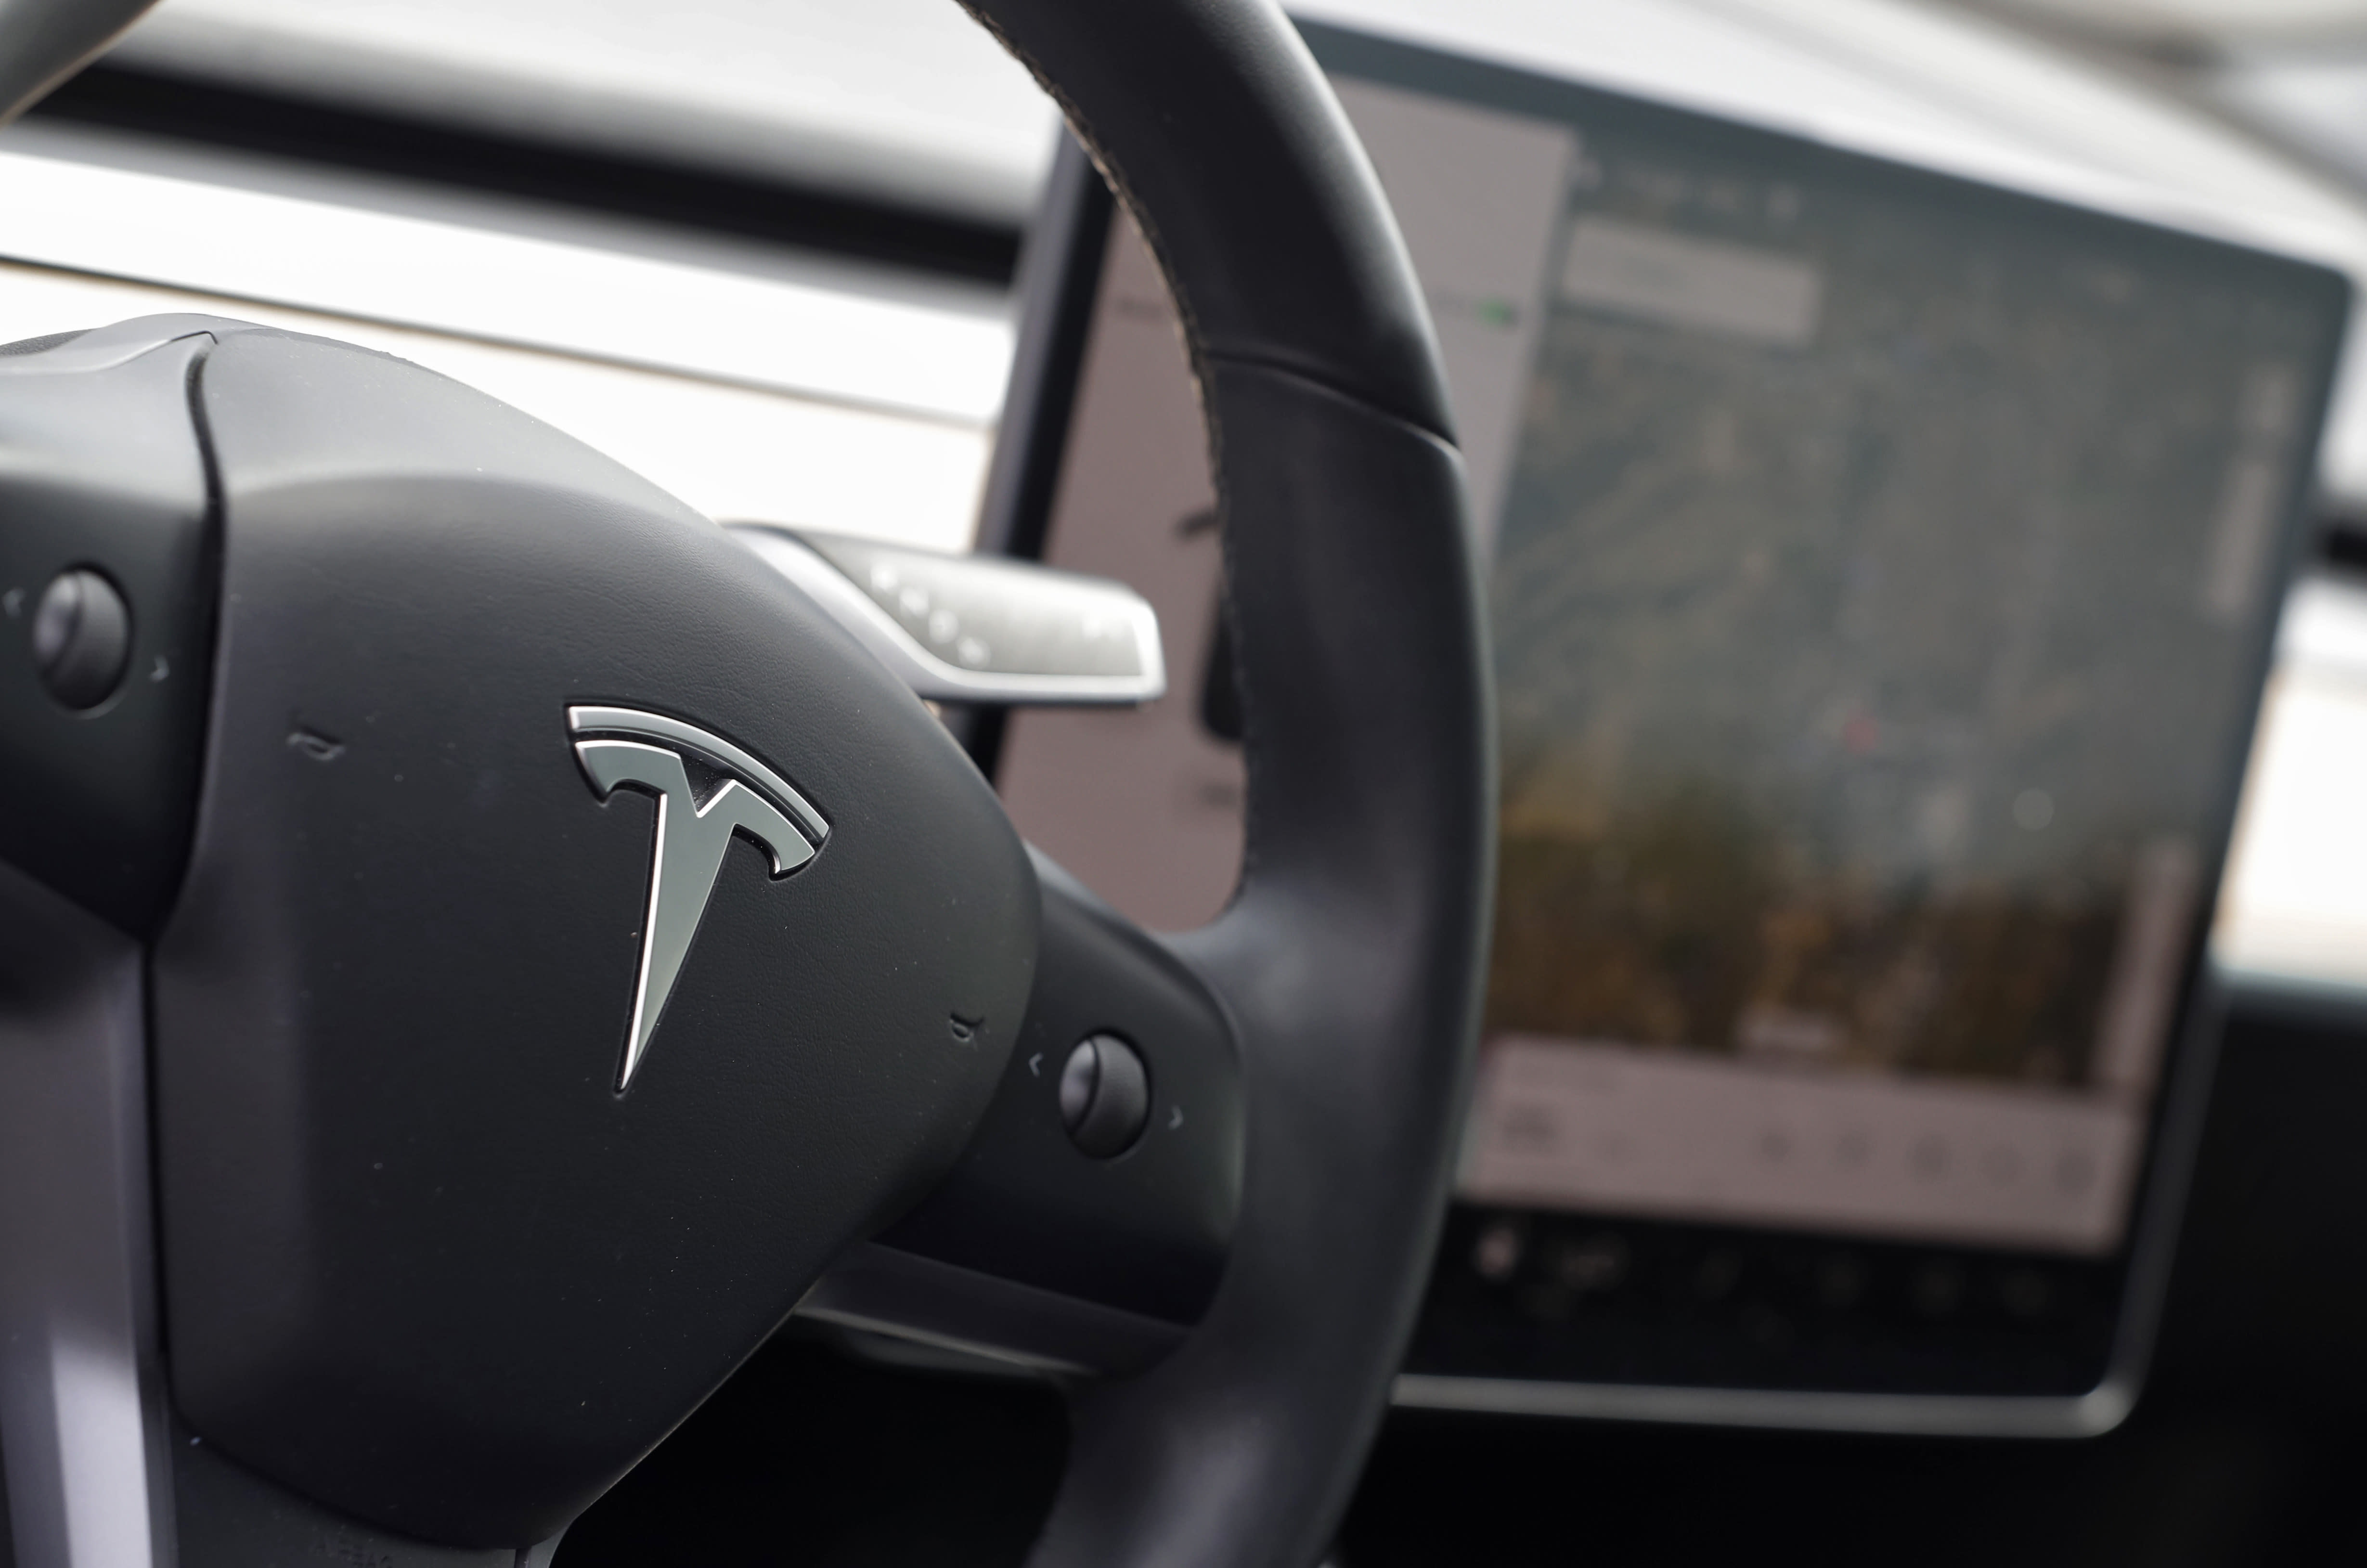 Tesla under pressure to 'misleading' safety claims